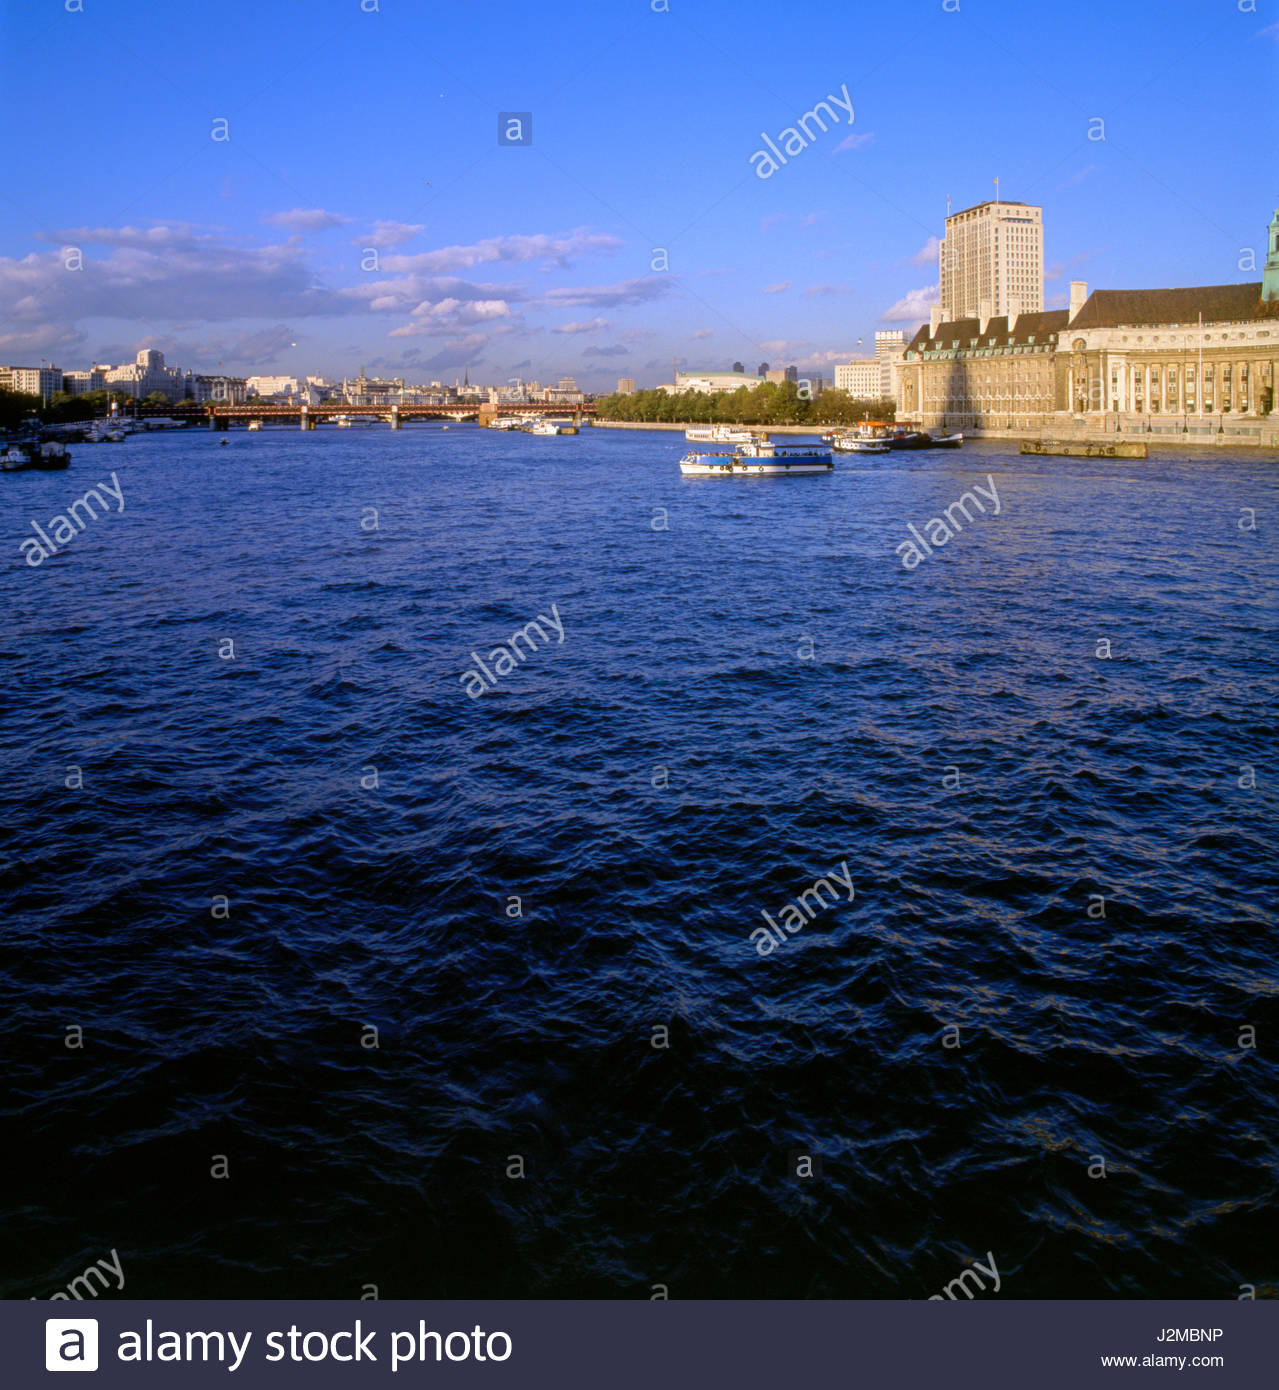 London, England, United Kingdom. The County Hall (on the right) along the Albert Embankment, River Thames. County - Stock Image